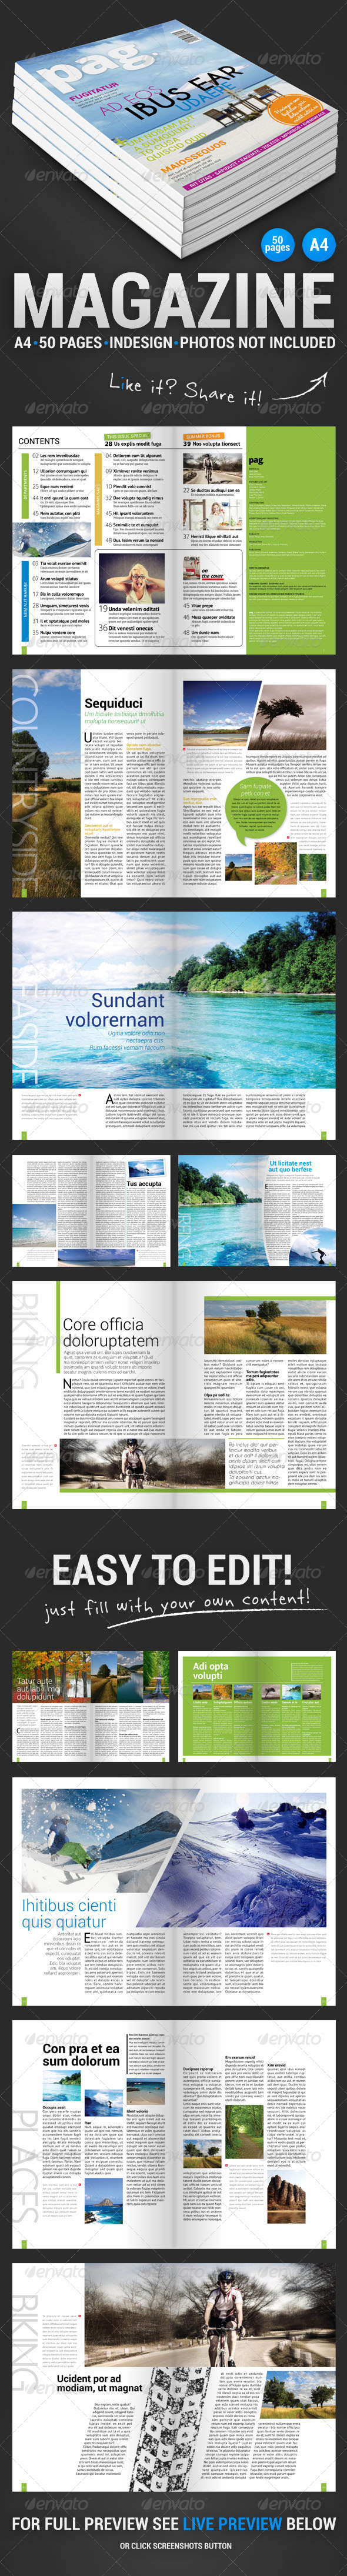 Pag 50 Pages Magazine - Magazines Print Templates